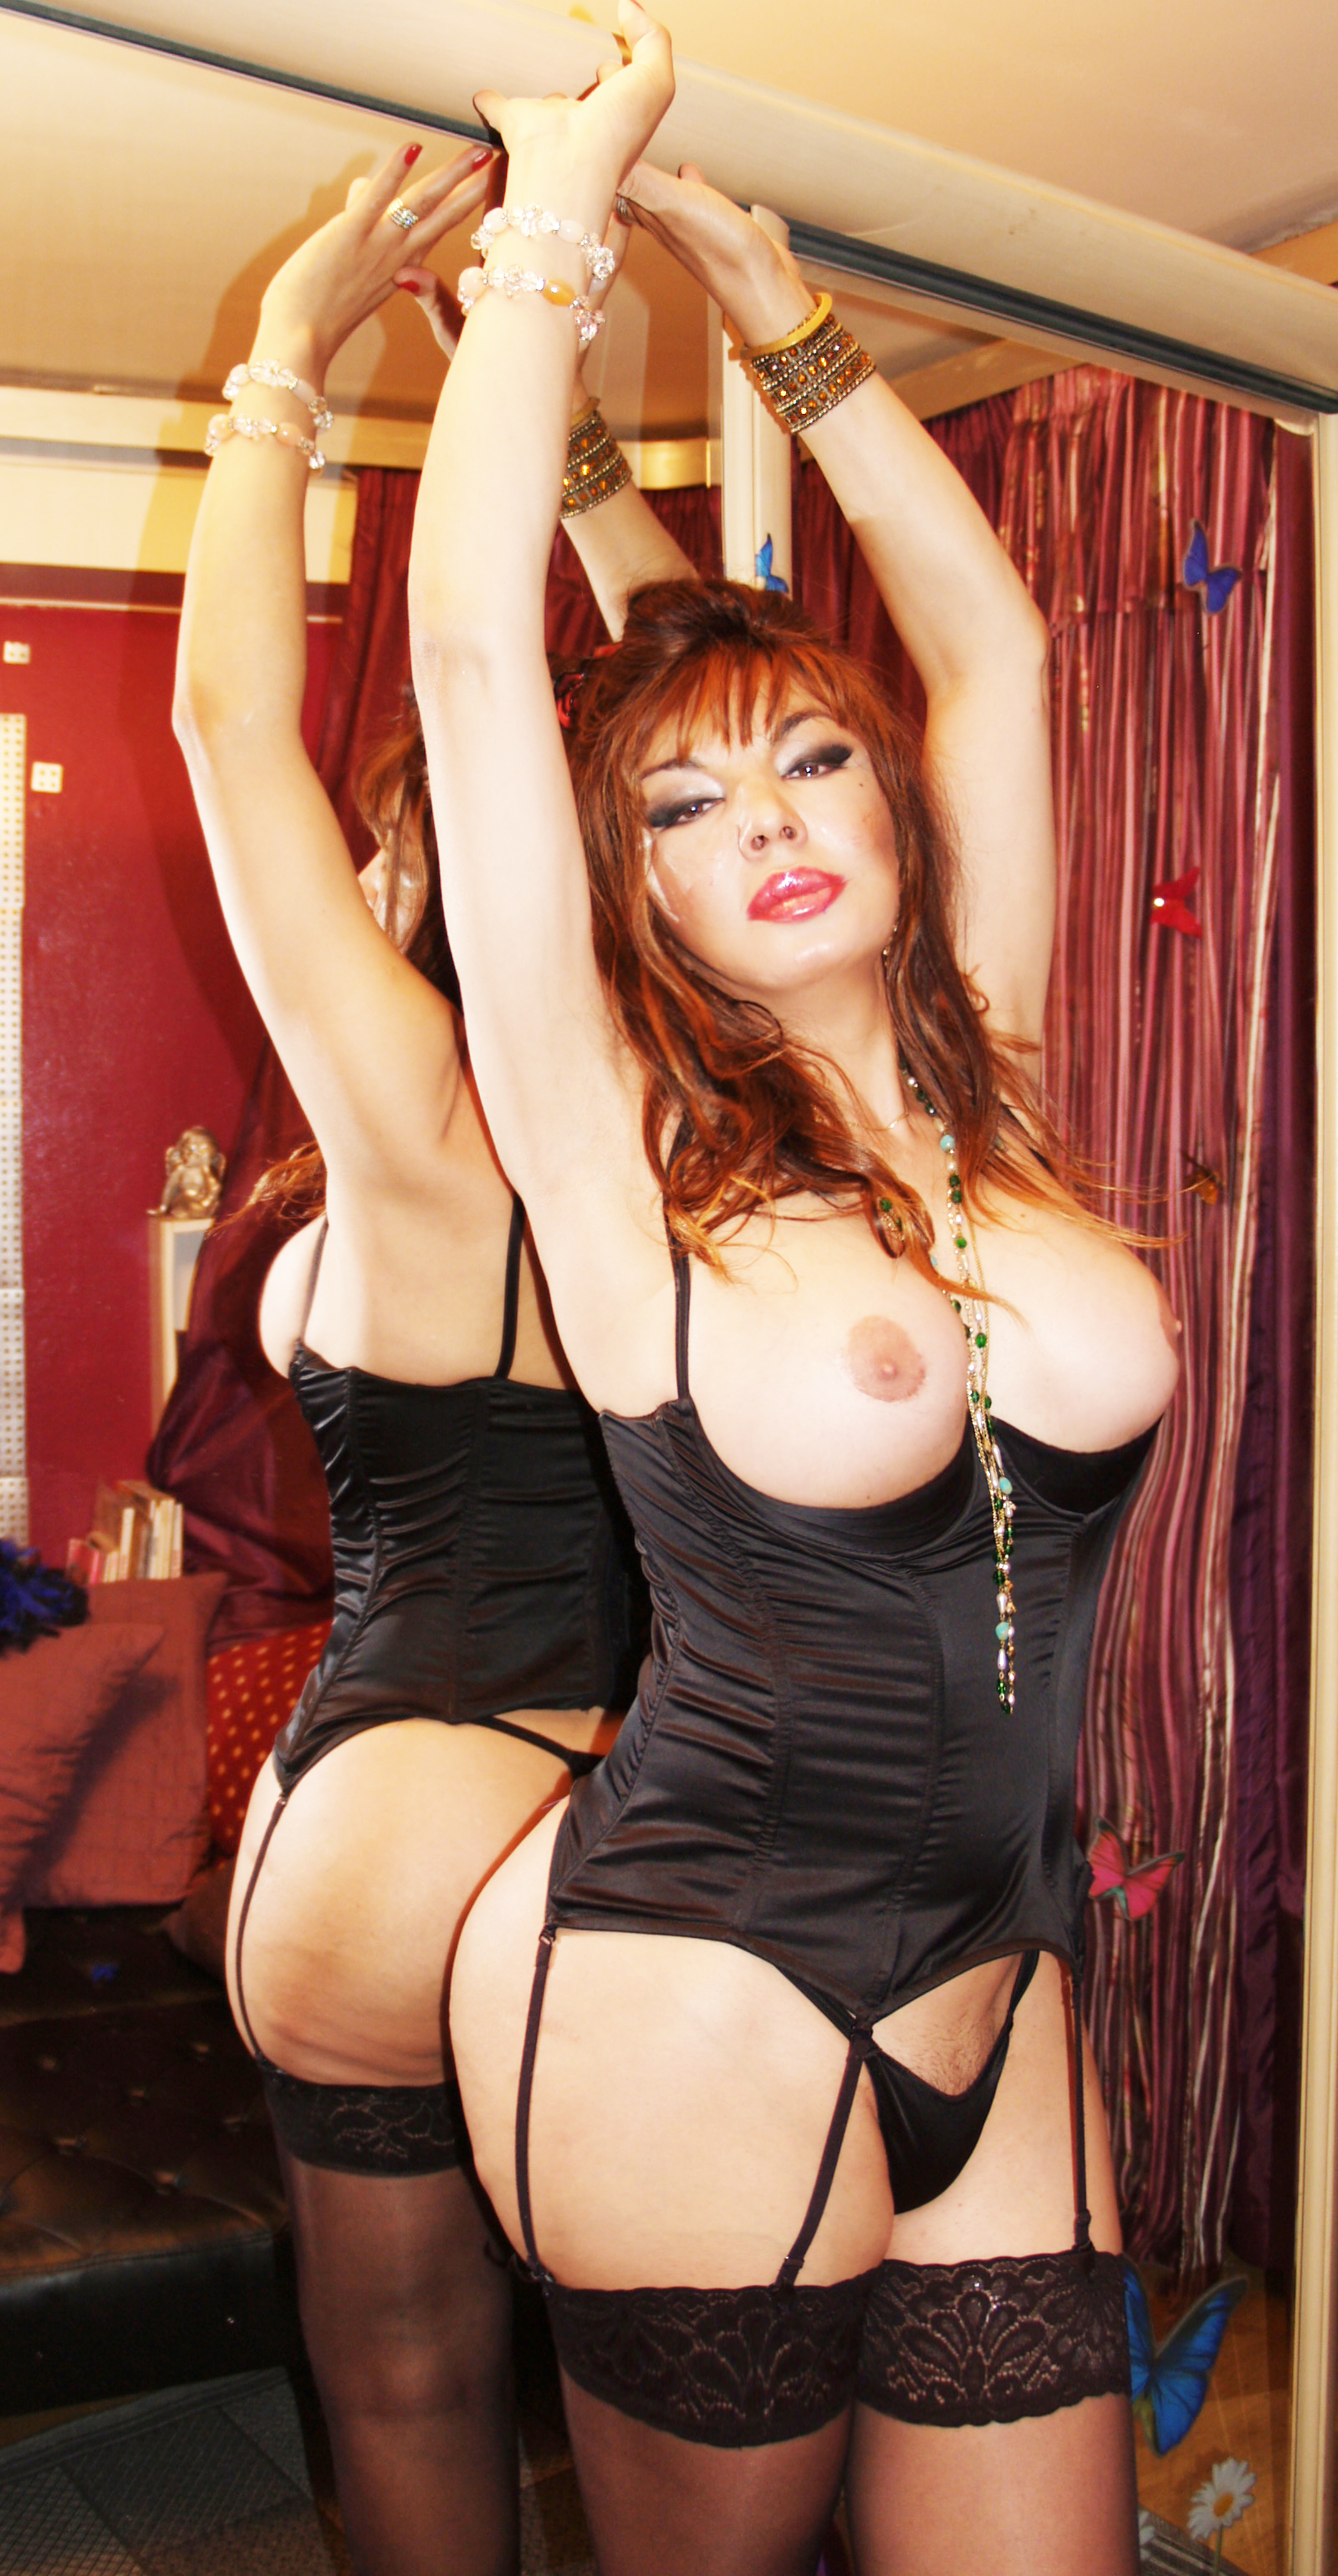 Paris transexual escort